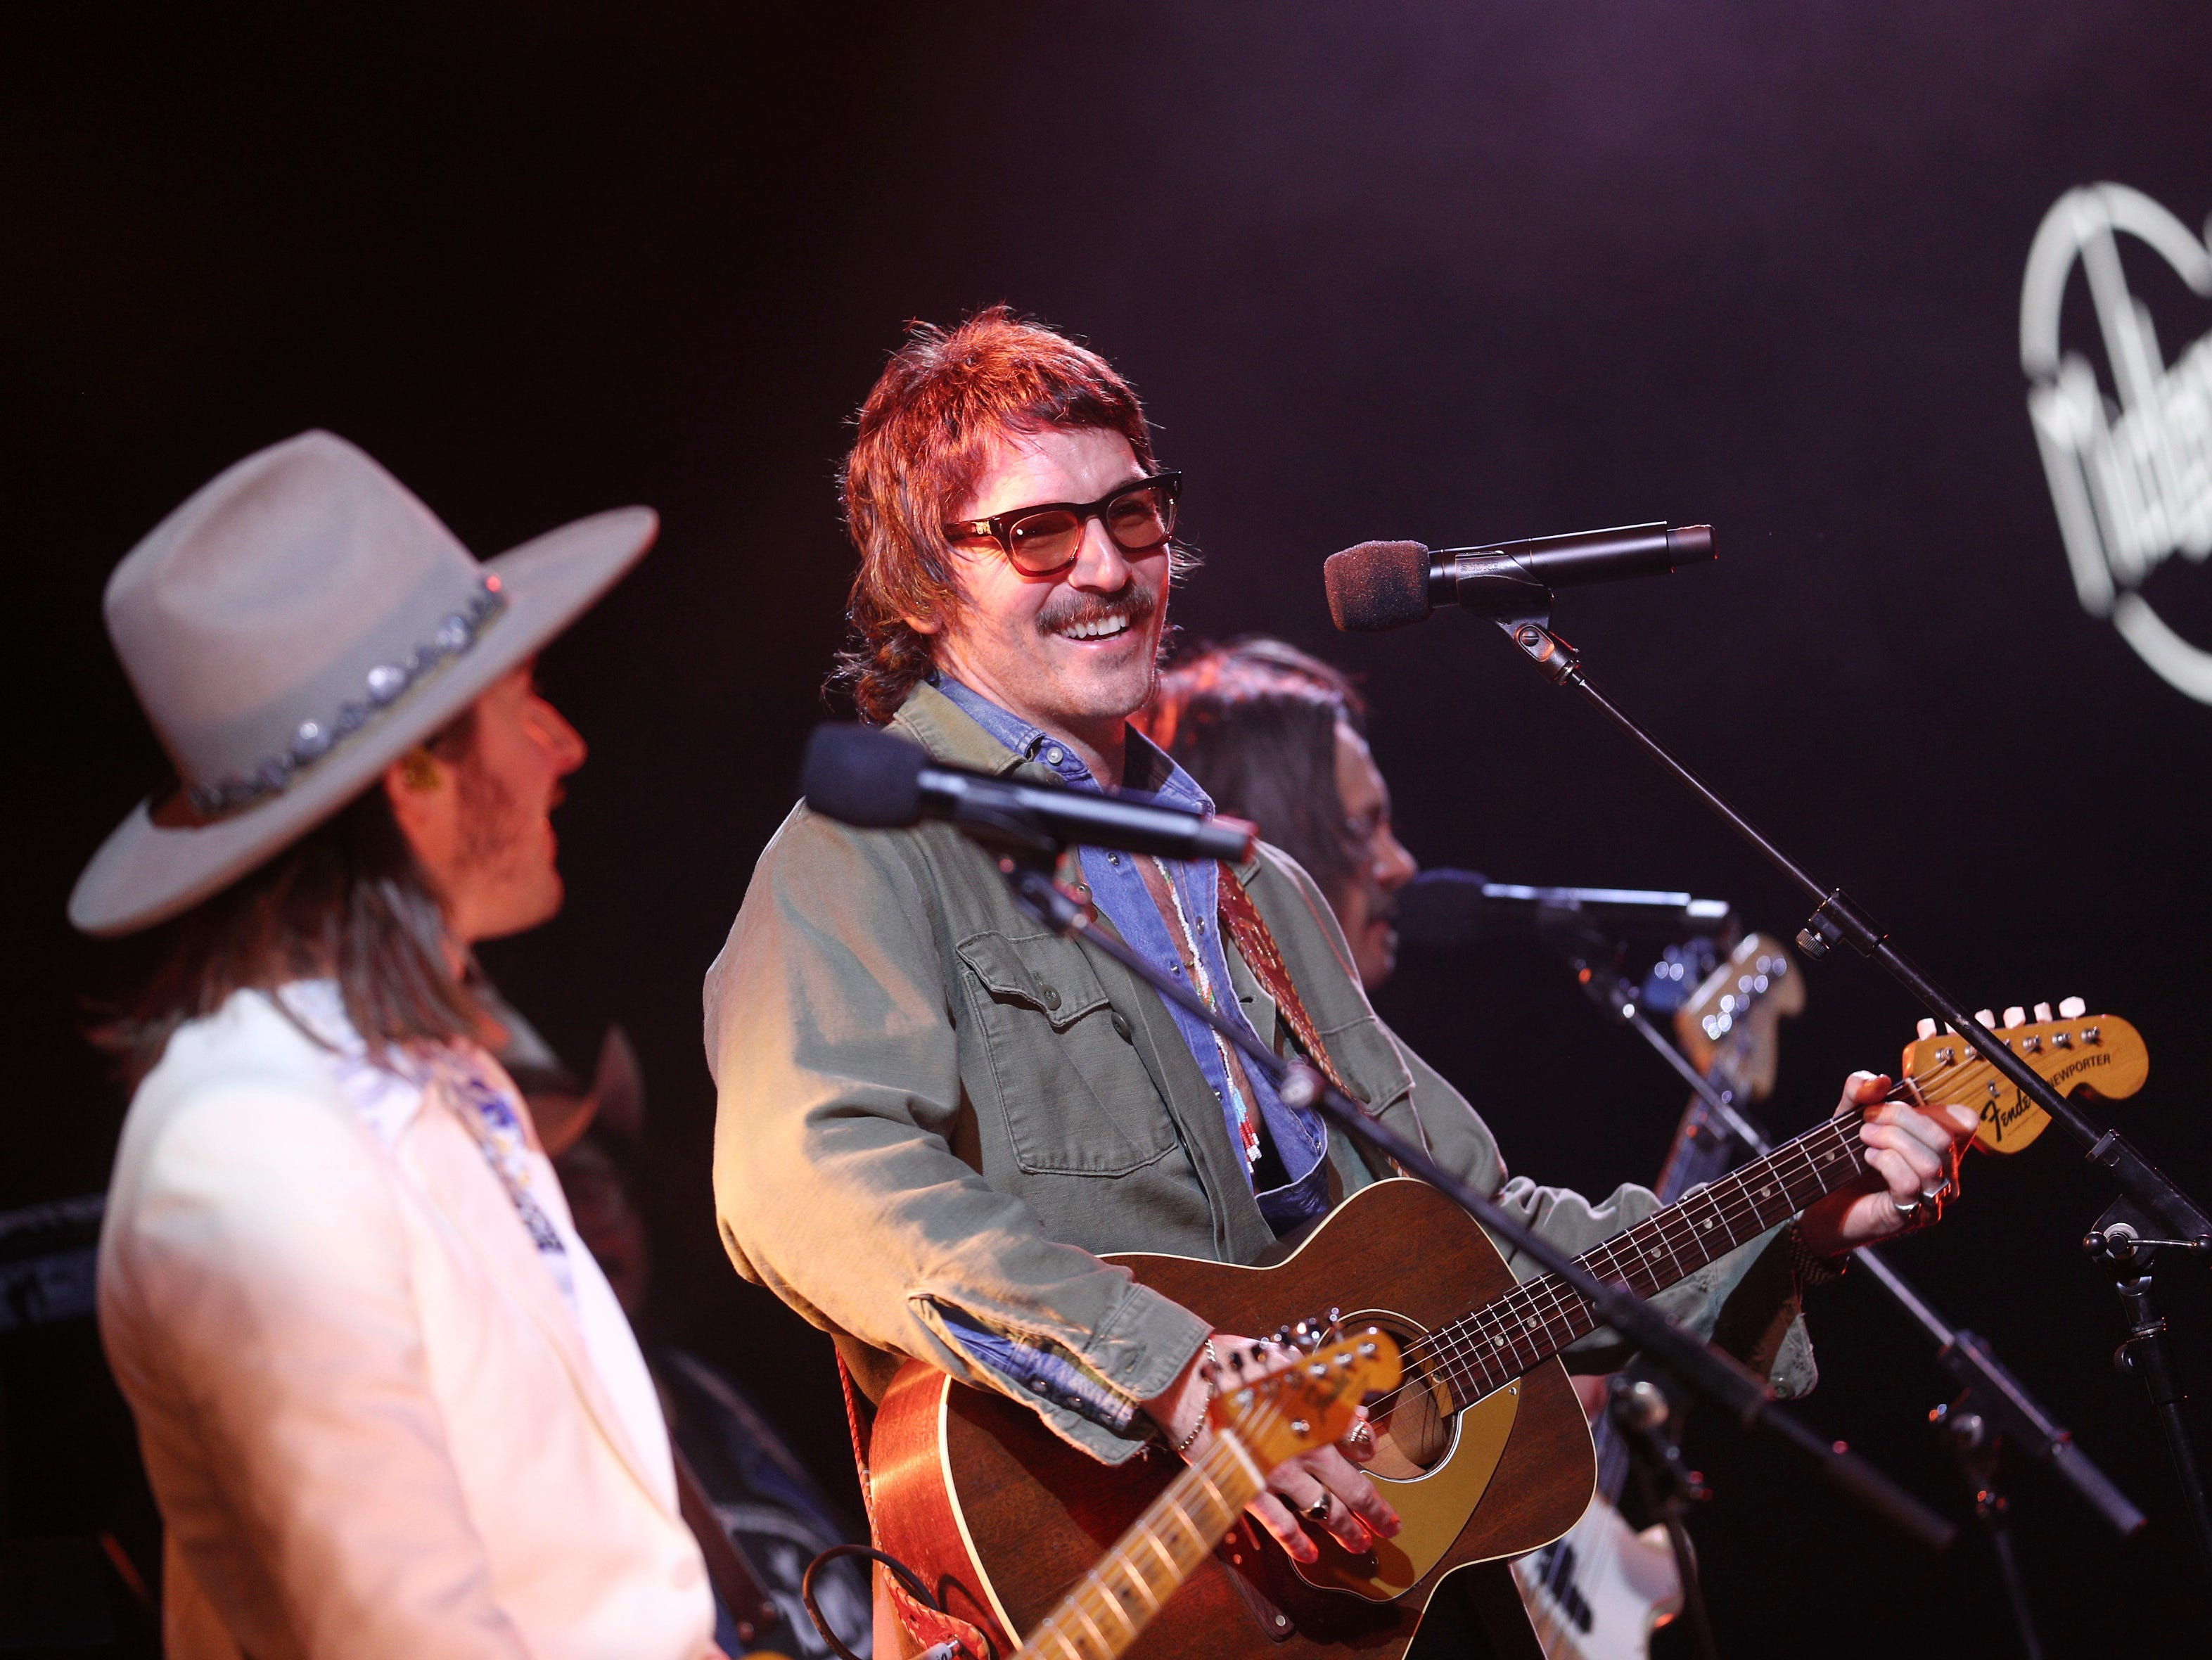 Midland performs at Sir Lucian Grainge's 2019 Artist Showcase Presented by Citi on February 9, 2019 in Los Angeles. (Photo by John Salangsang/Invision for Universal Music Group/AP Images)